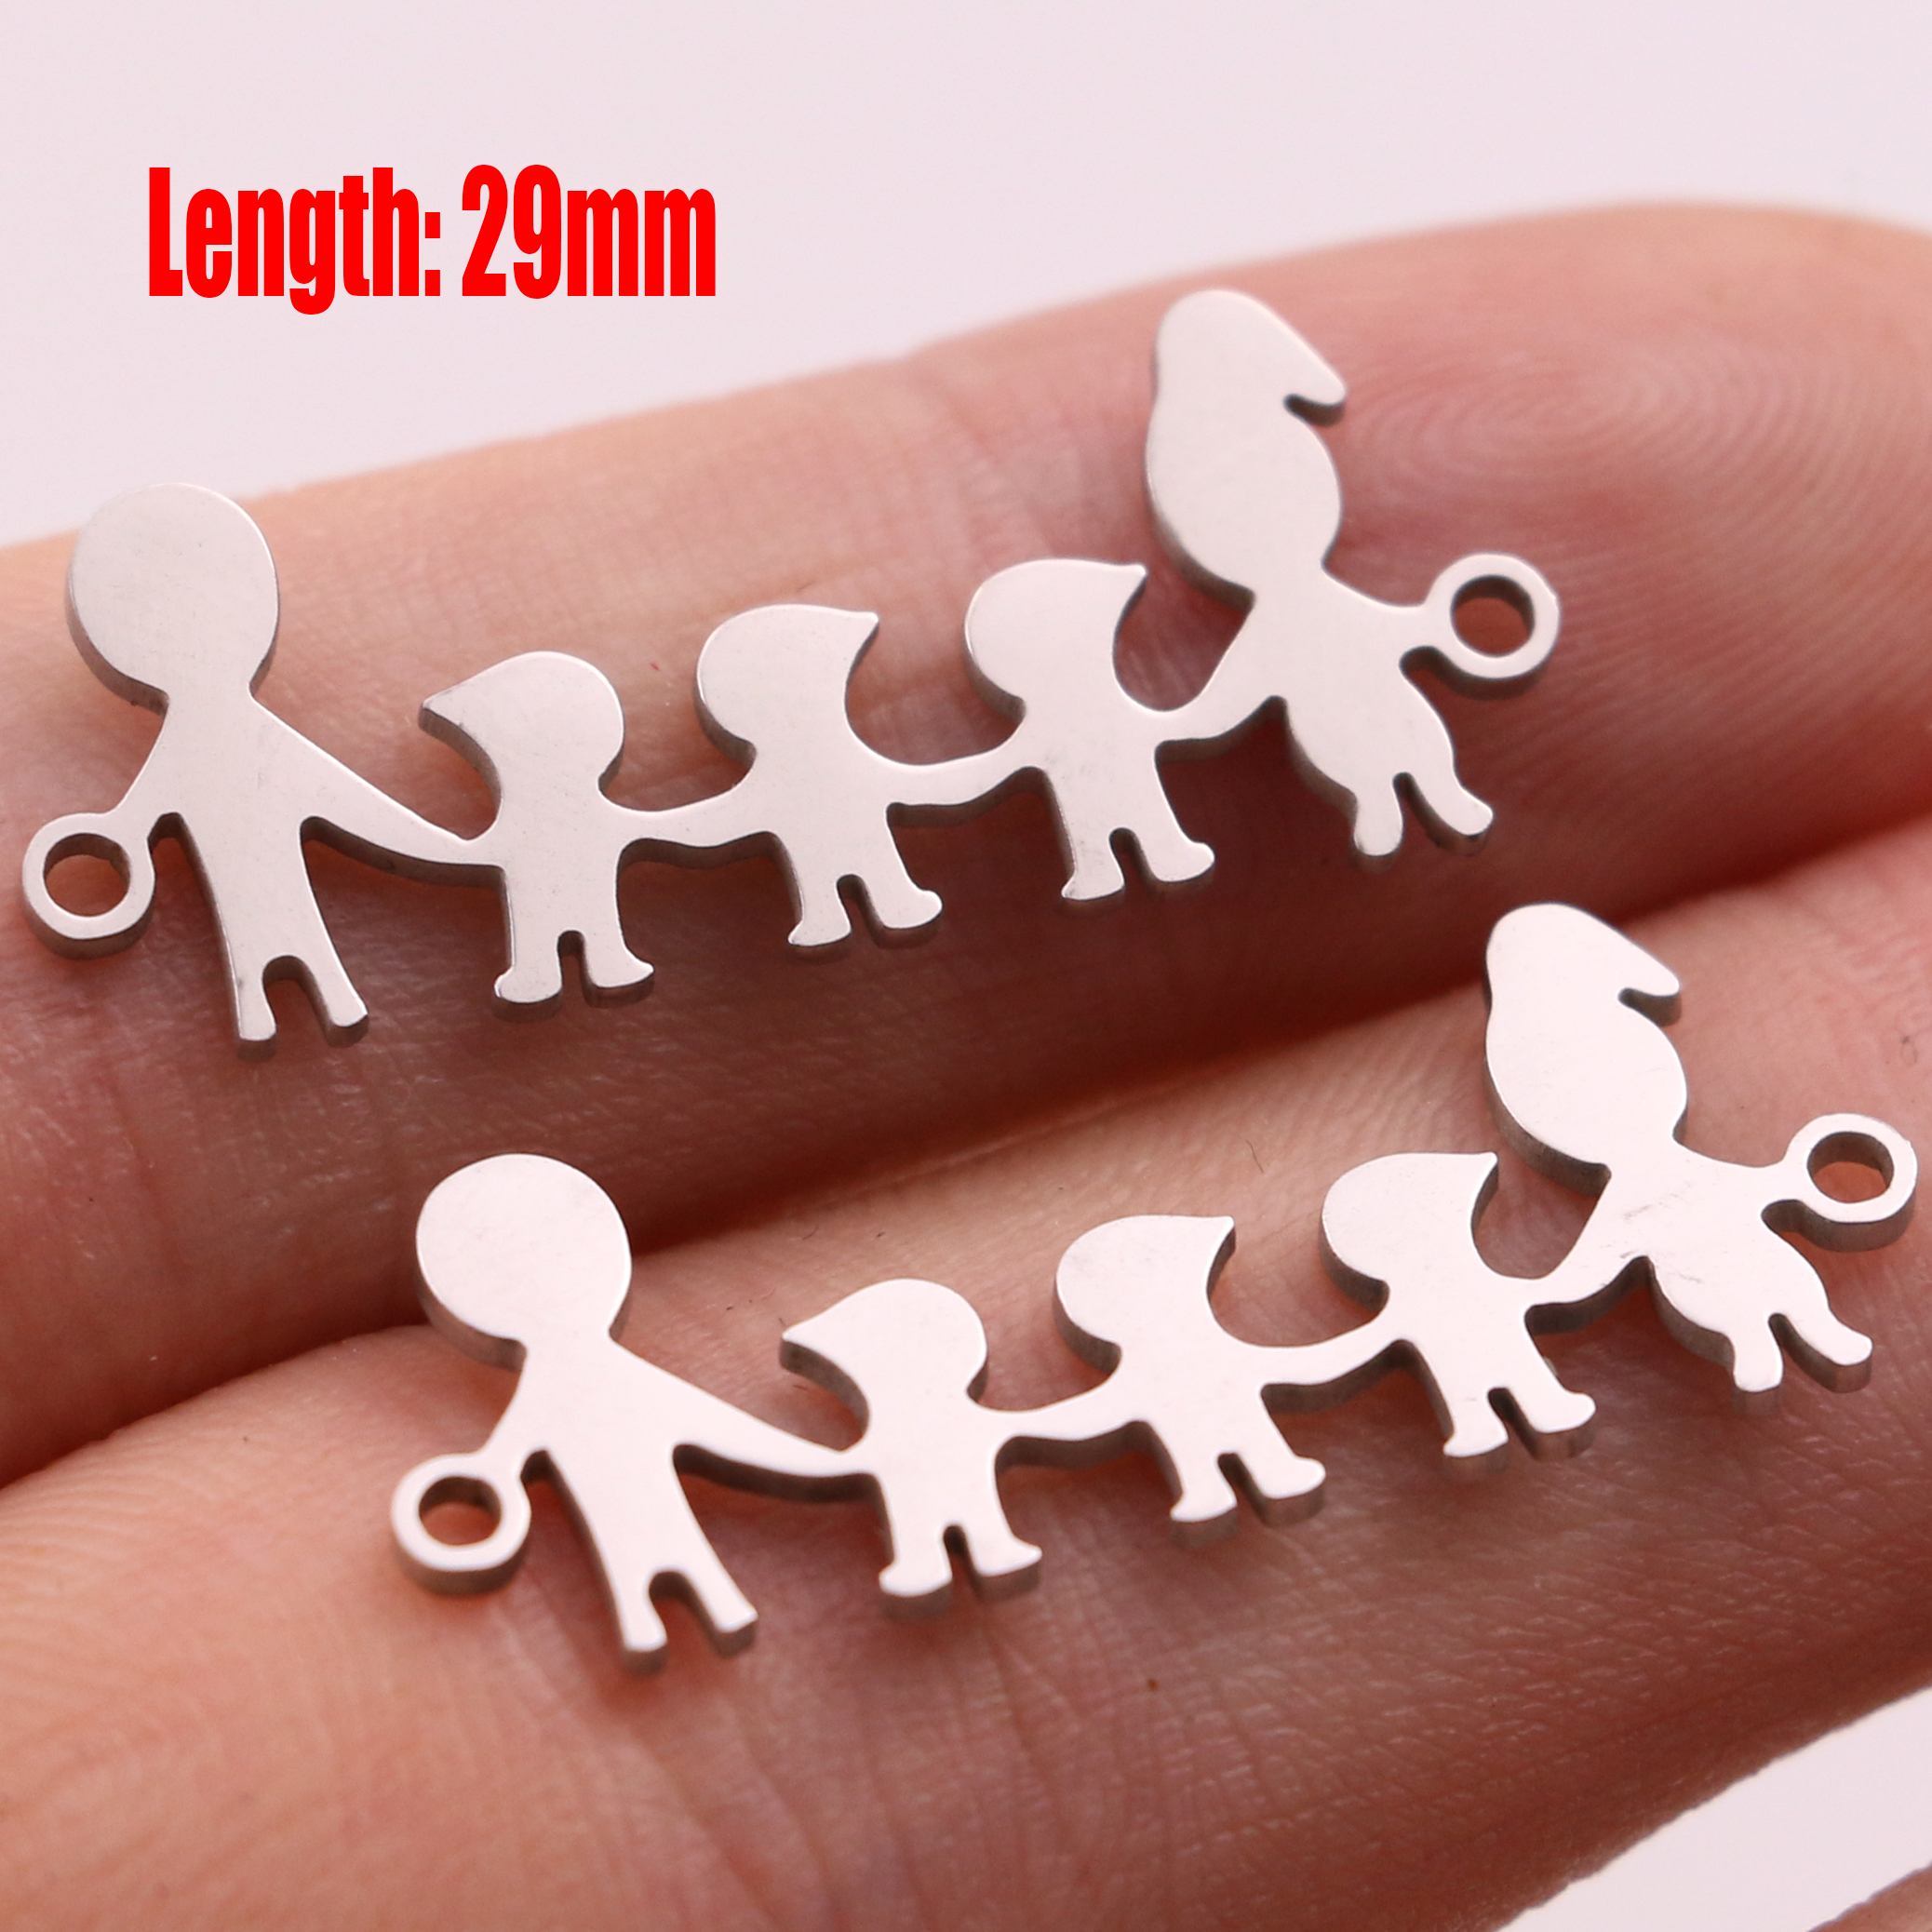 5pcs Family Chain Stainless Steel Pendant Necklace Parents and Children Necklaces Gold/steel Jewelry Gift for Mom Dad New Twice - Цвет: Steel 30